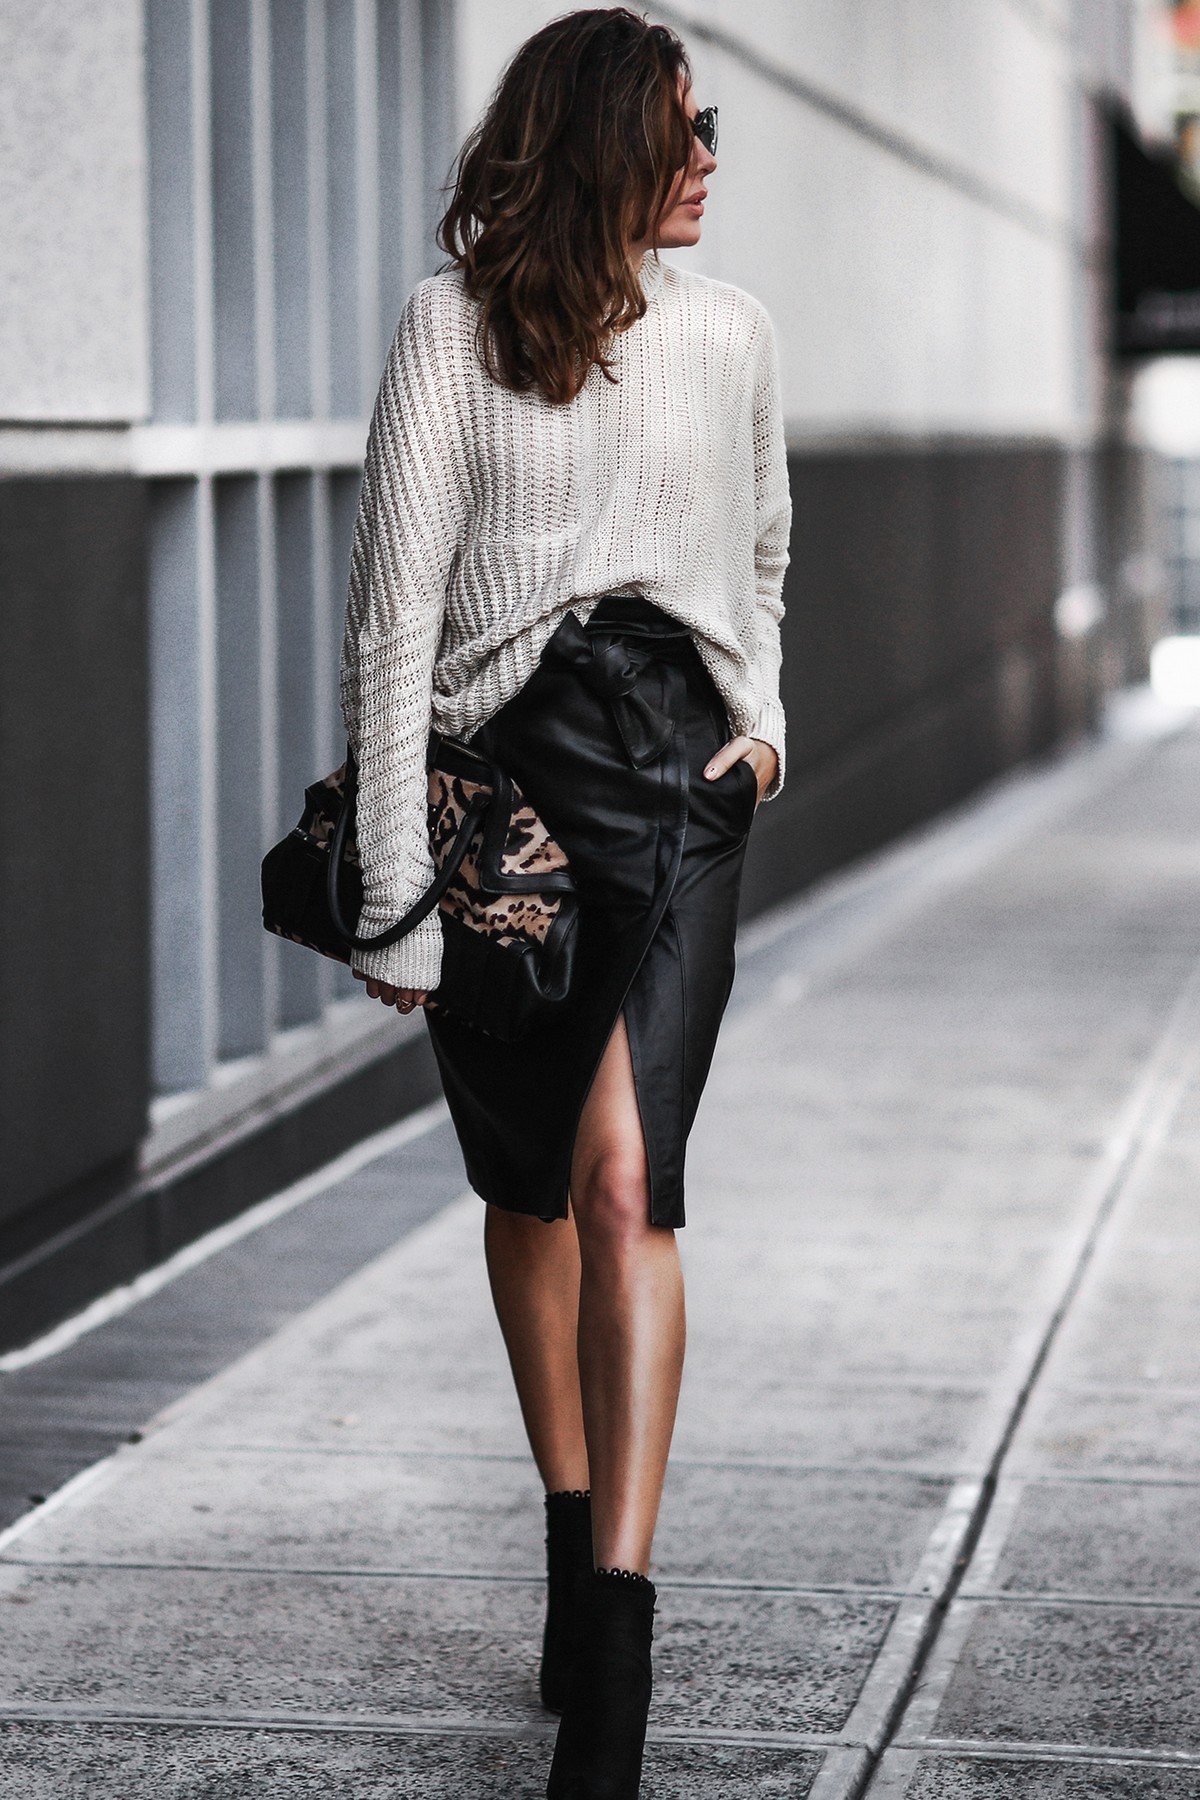 stella mccartney sweater, leather skirt, black booties, leopard bag